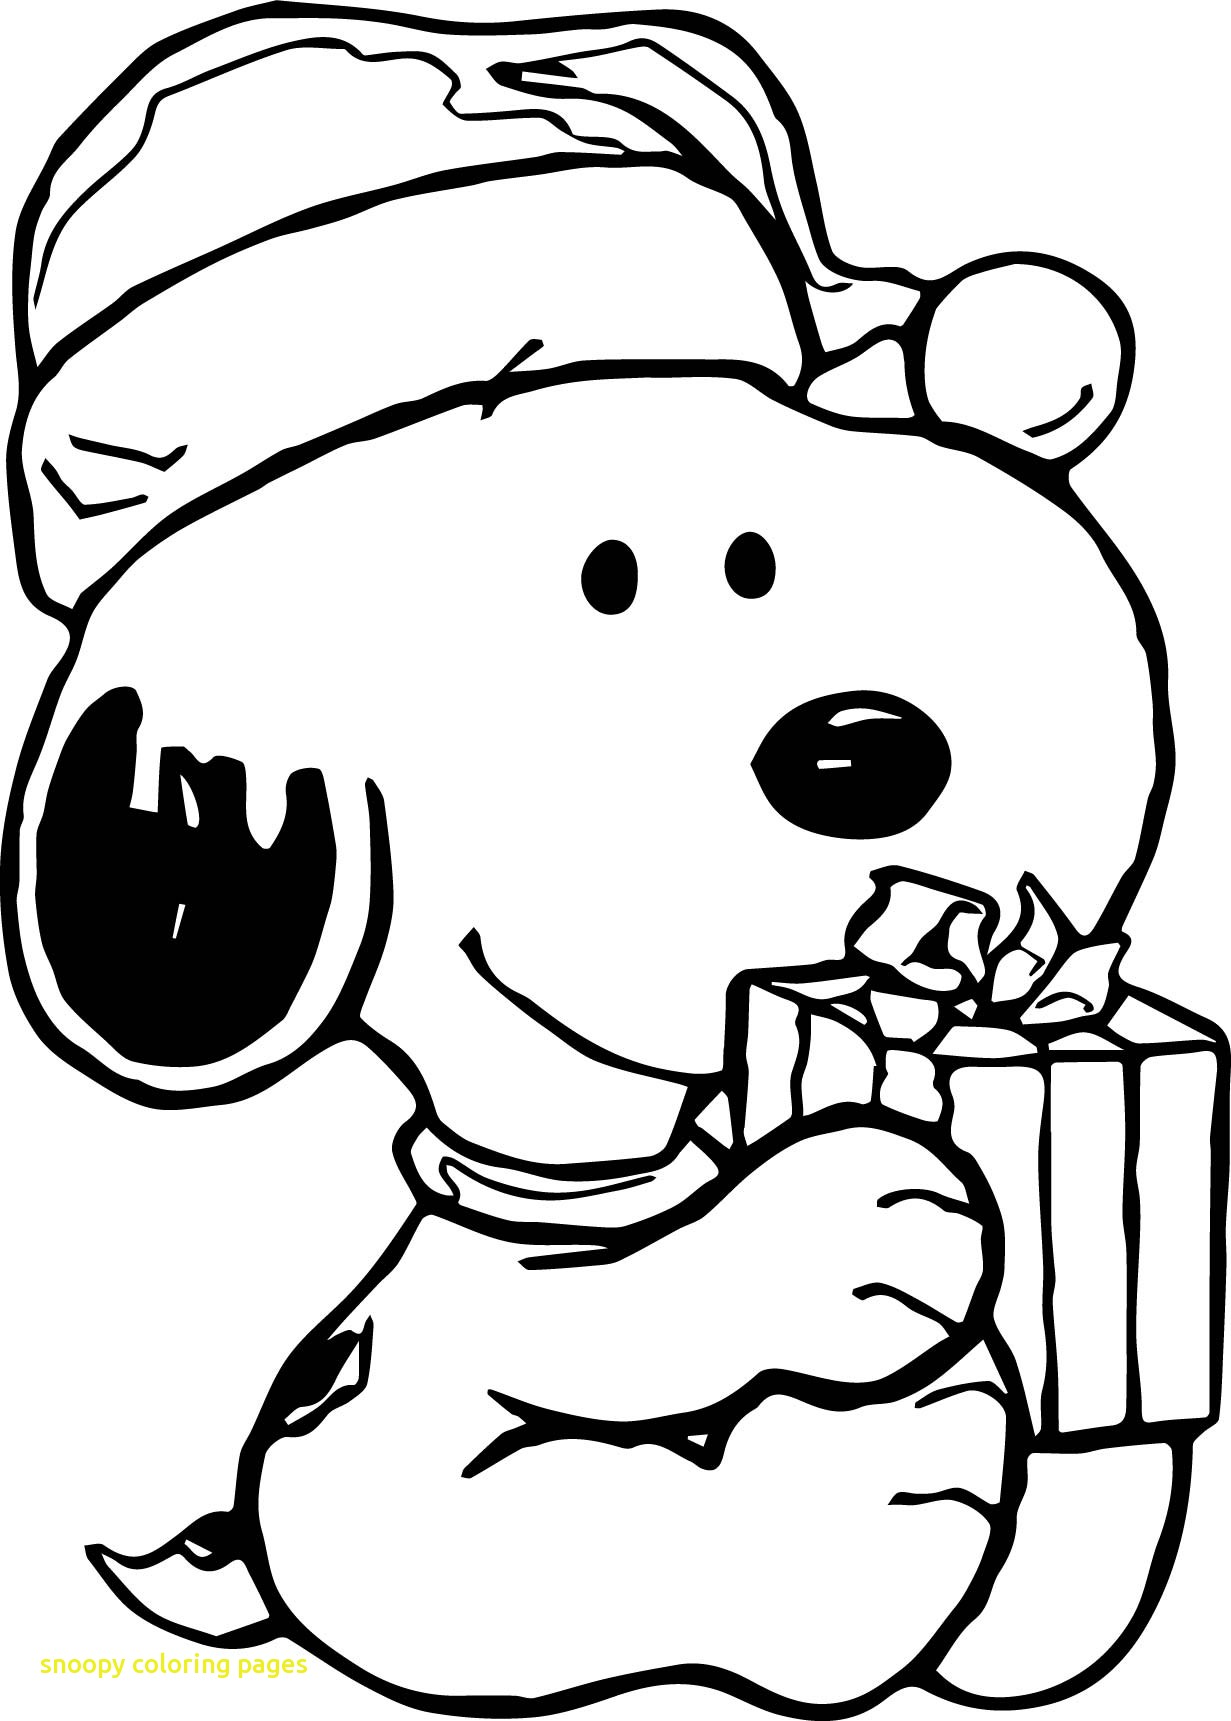 1231x1721 Fresh Snoopy Coloring Pages With Baby Snoopy Christmas Coloring